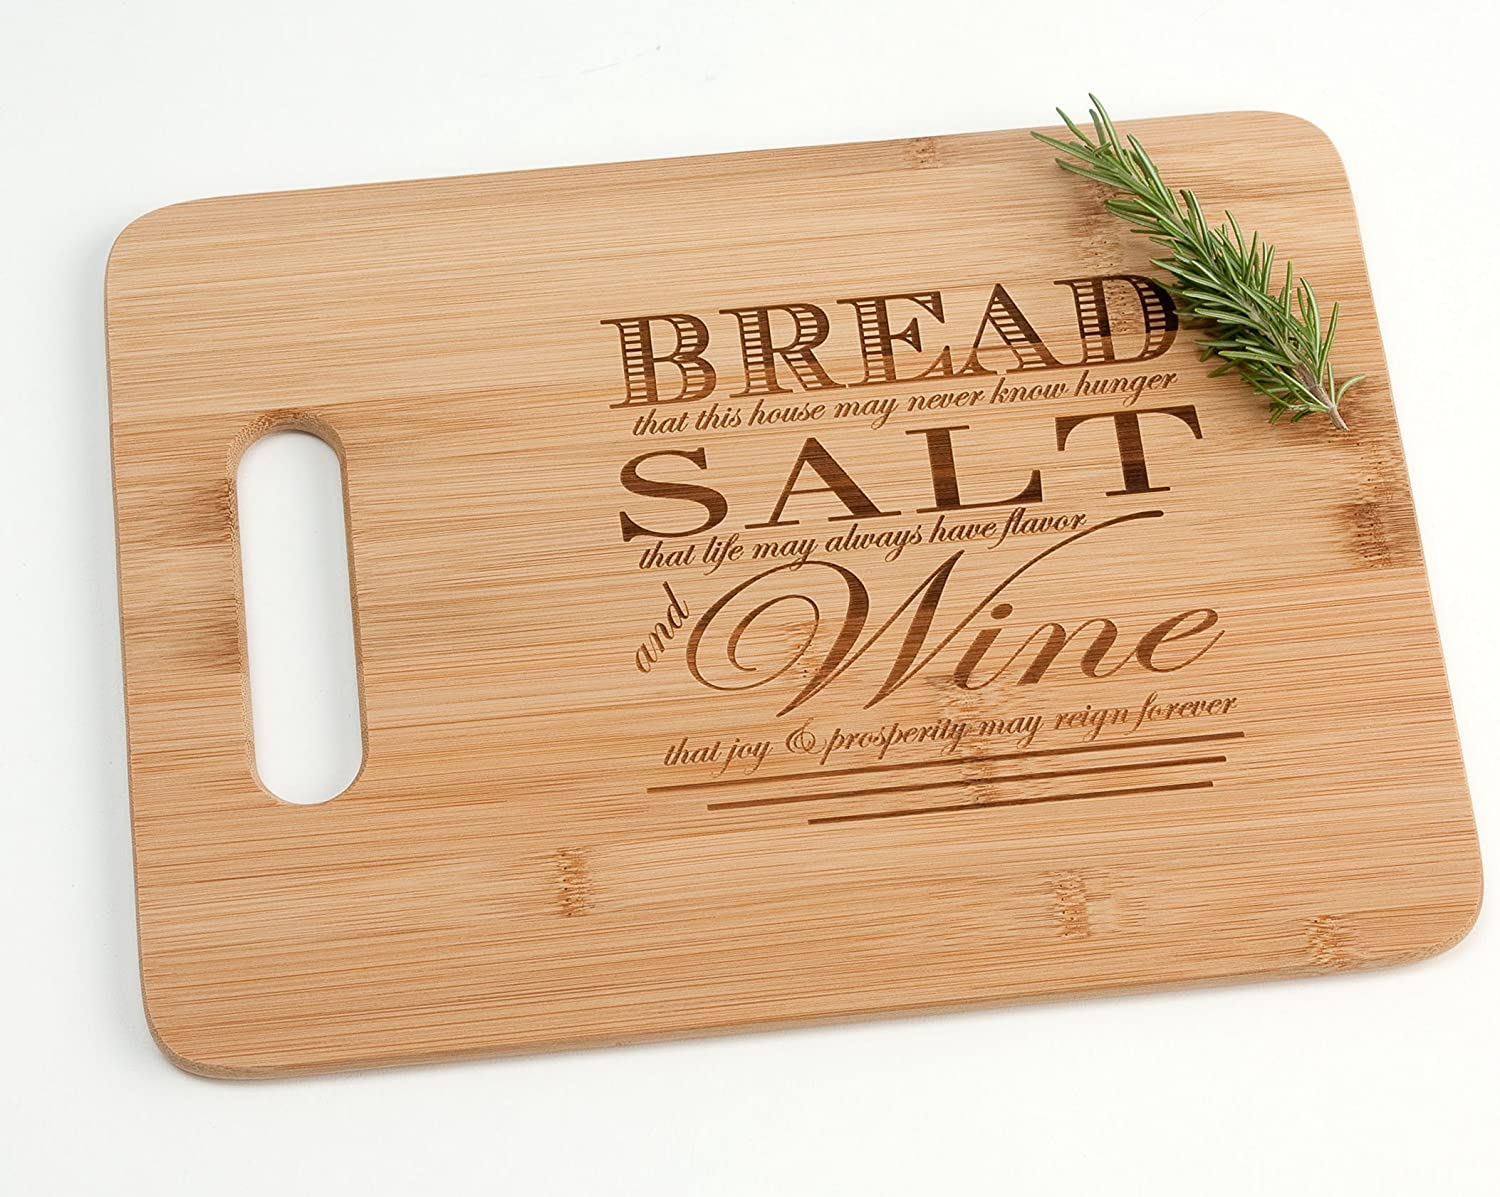 Amazon Com Engraved Wood Cutting Board Housewarming Gift Bread Salt Wine Quote From It S A Wonderful Life Kitchen Dining